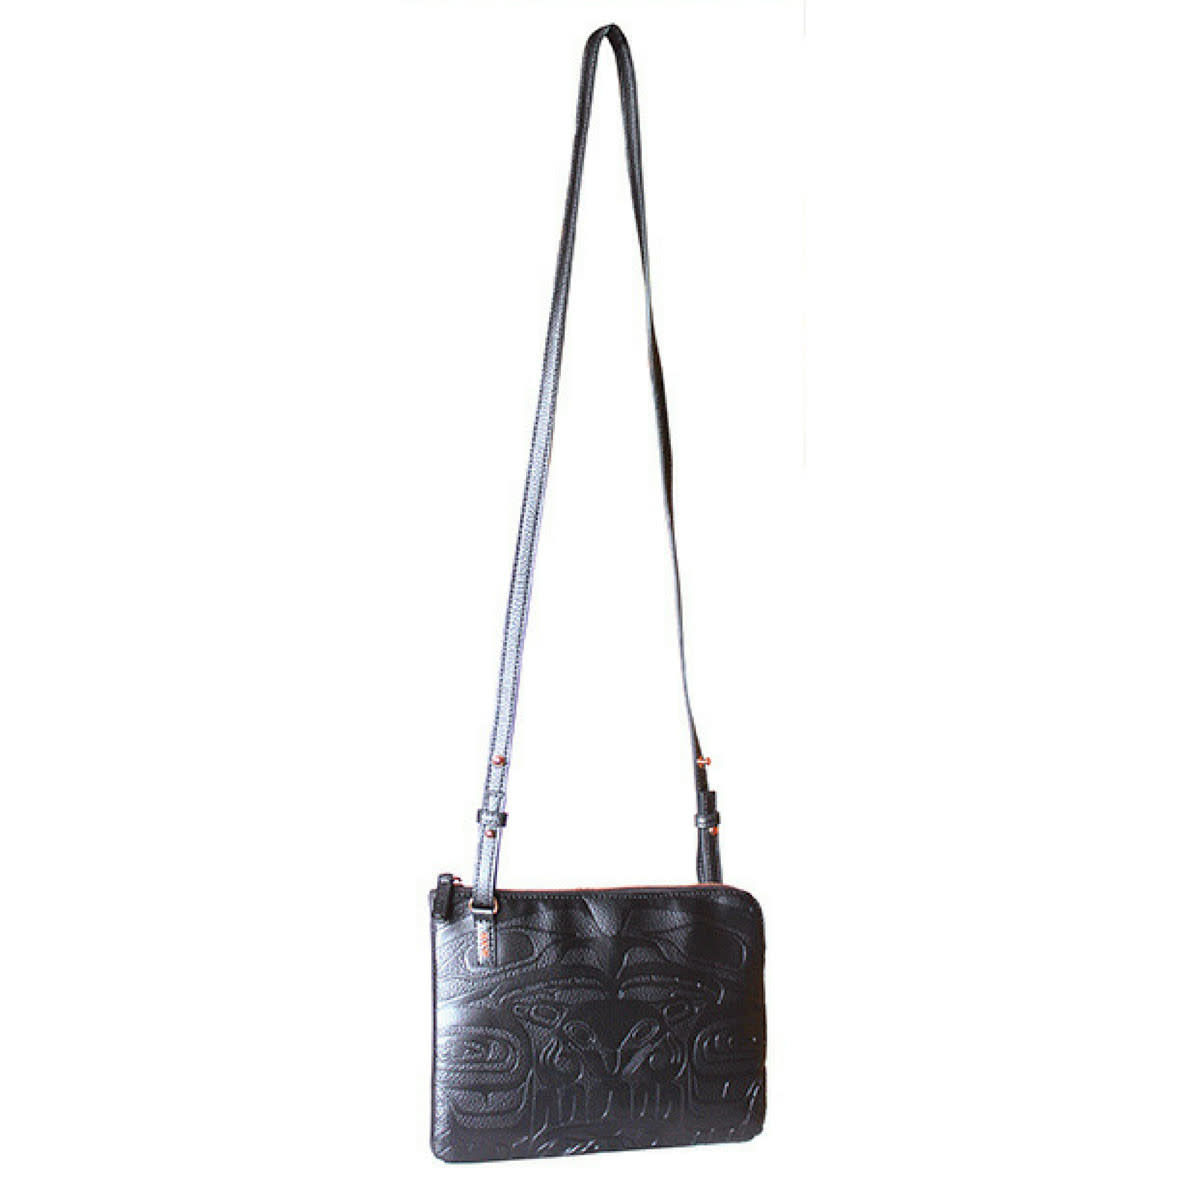 Embossed Fashion Bag - Thunderbird and Whale by Ernest Swanson-1